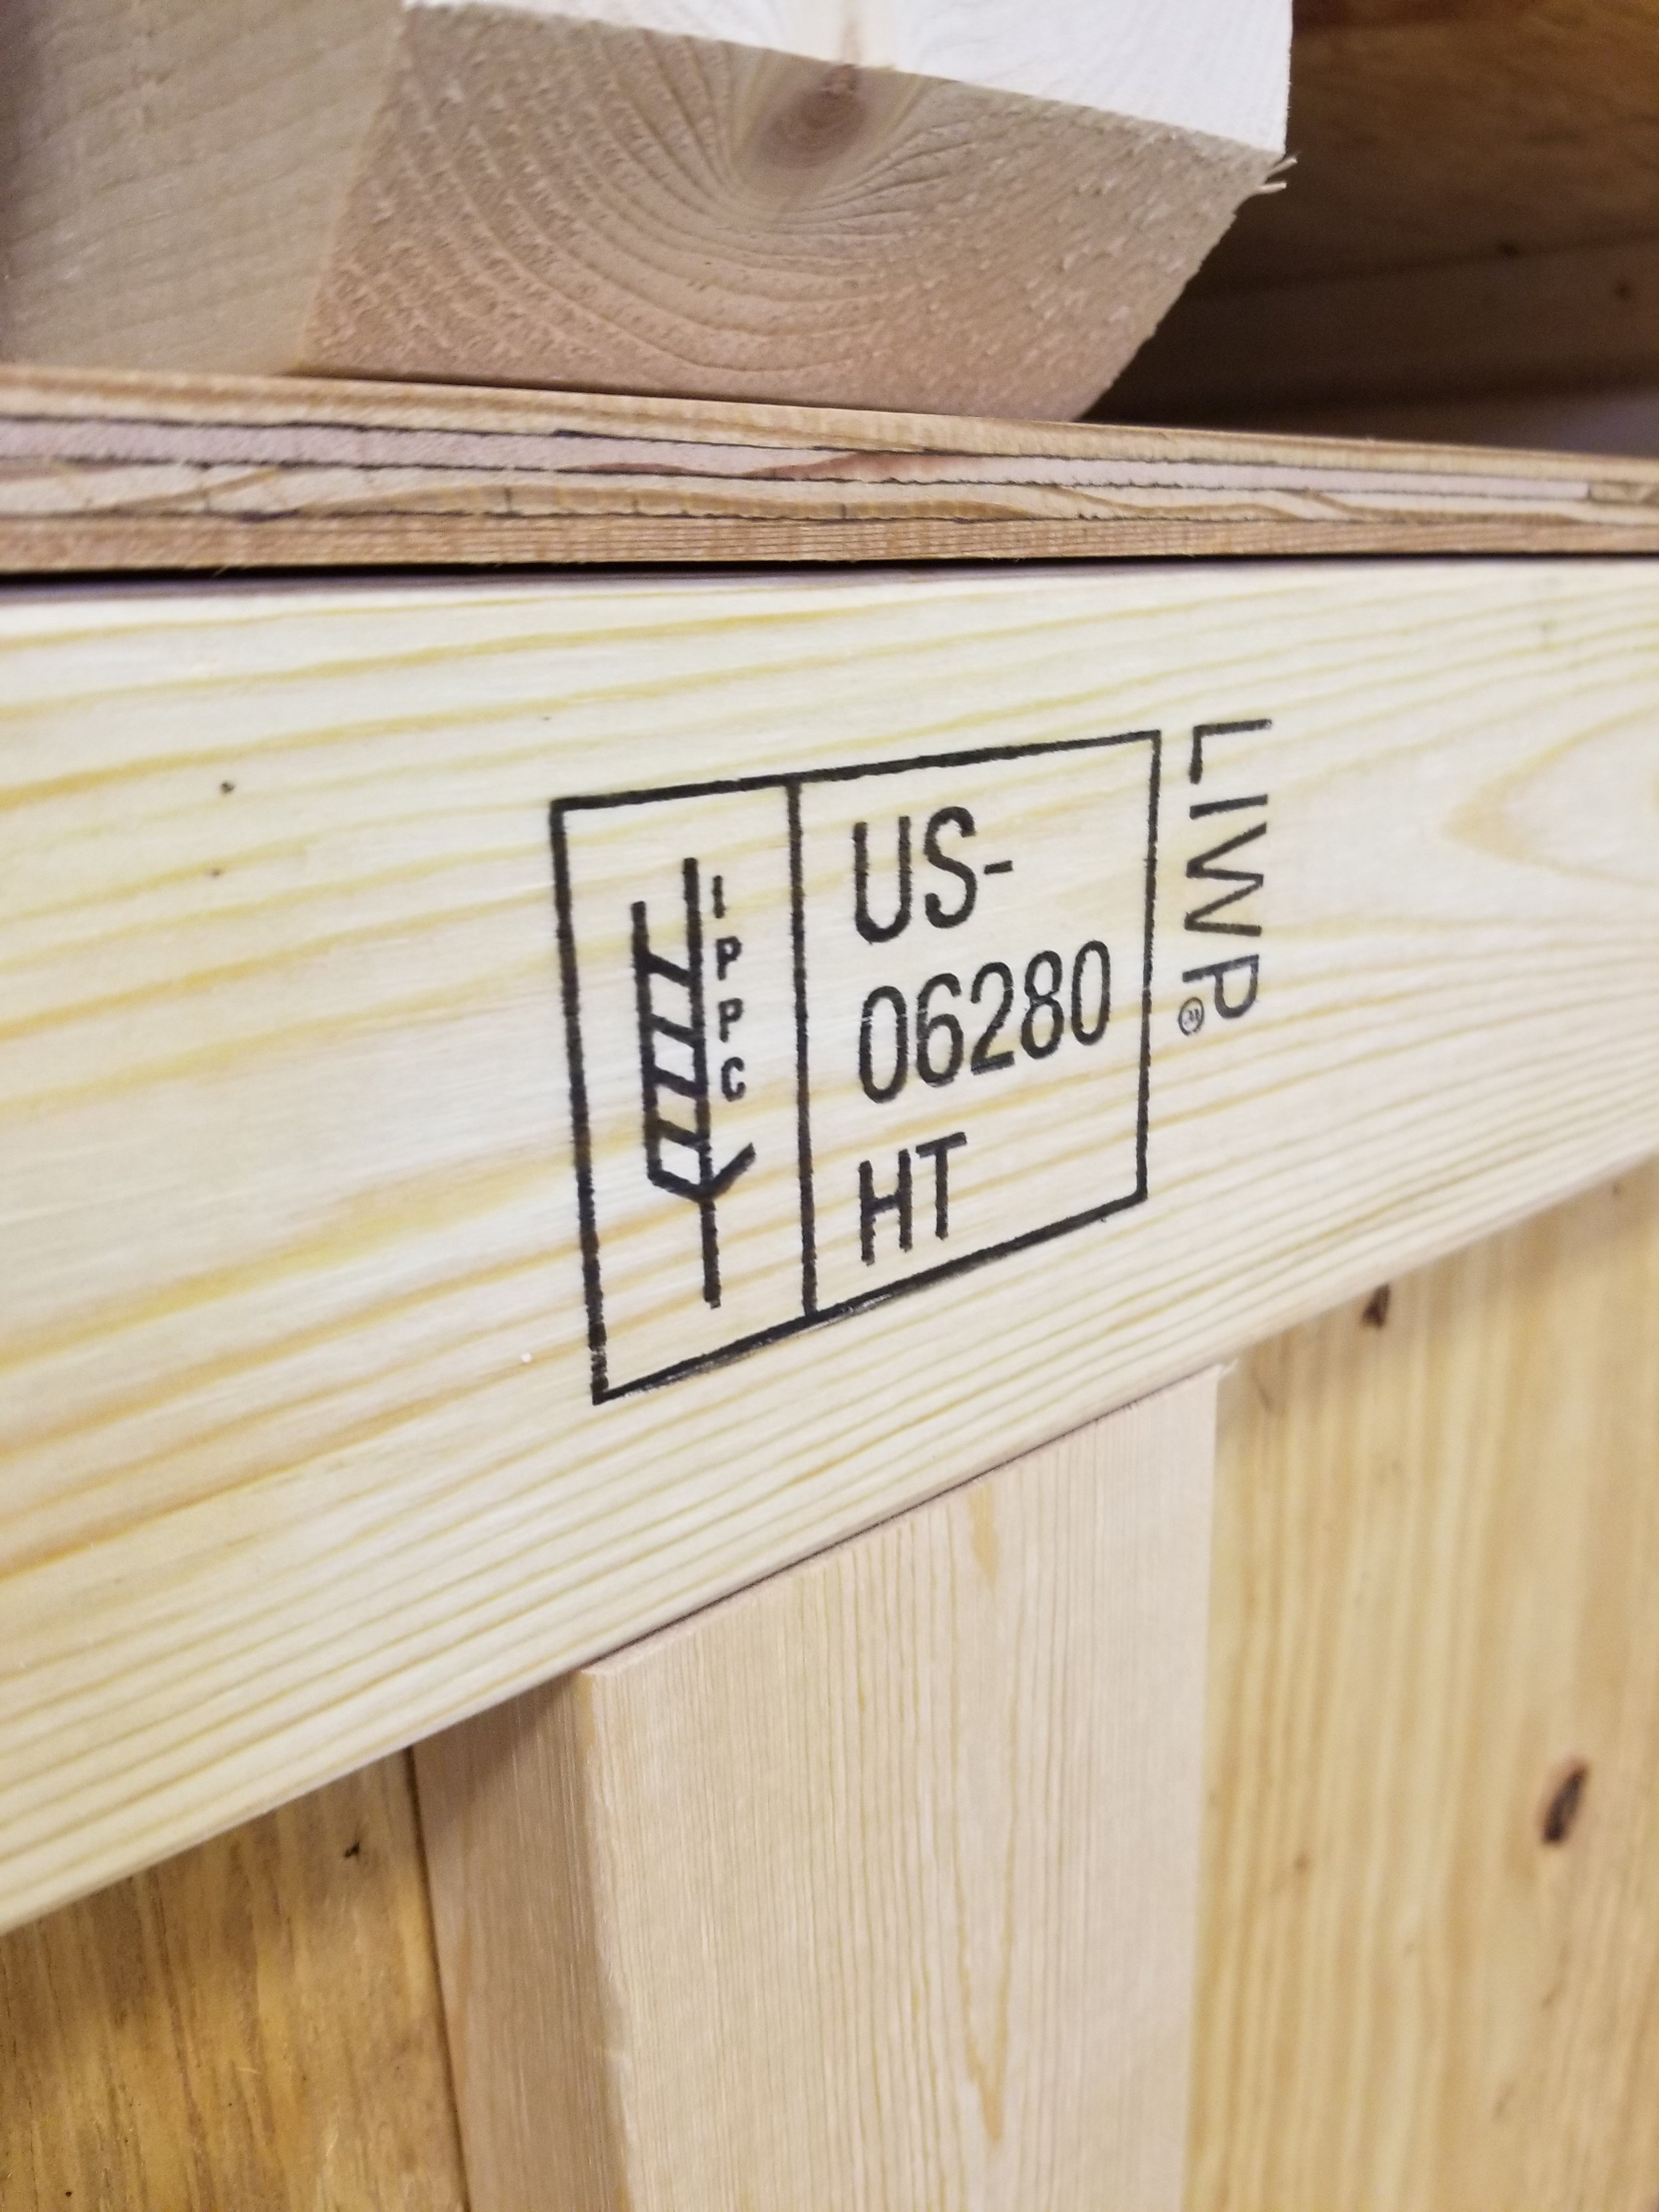 Specialty Crate Factory ippc/ISPM-15 Certification Stamp - A properly stamped, certified international shipping crate ready for export overseas.